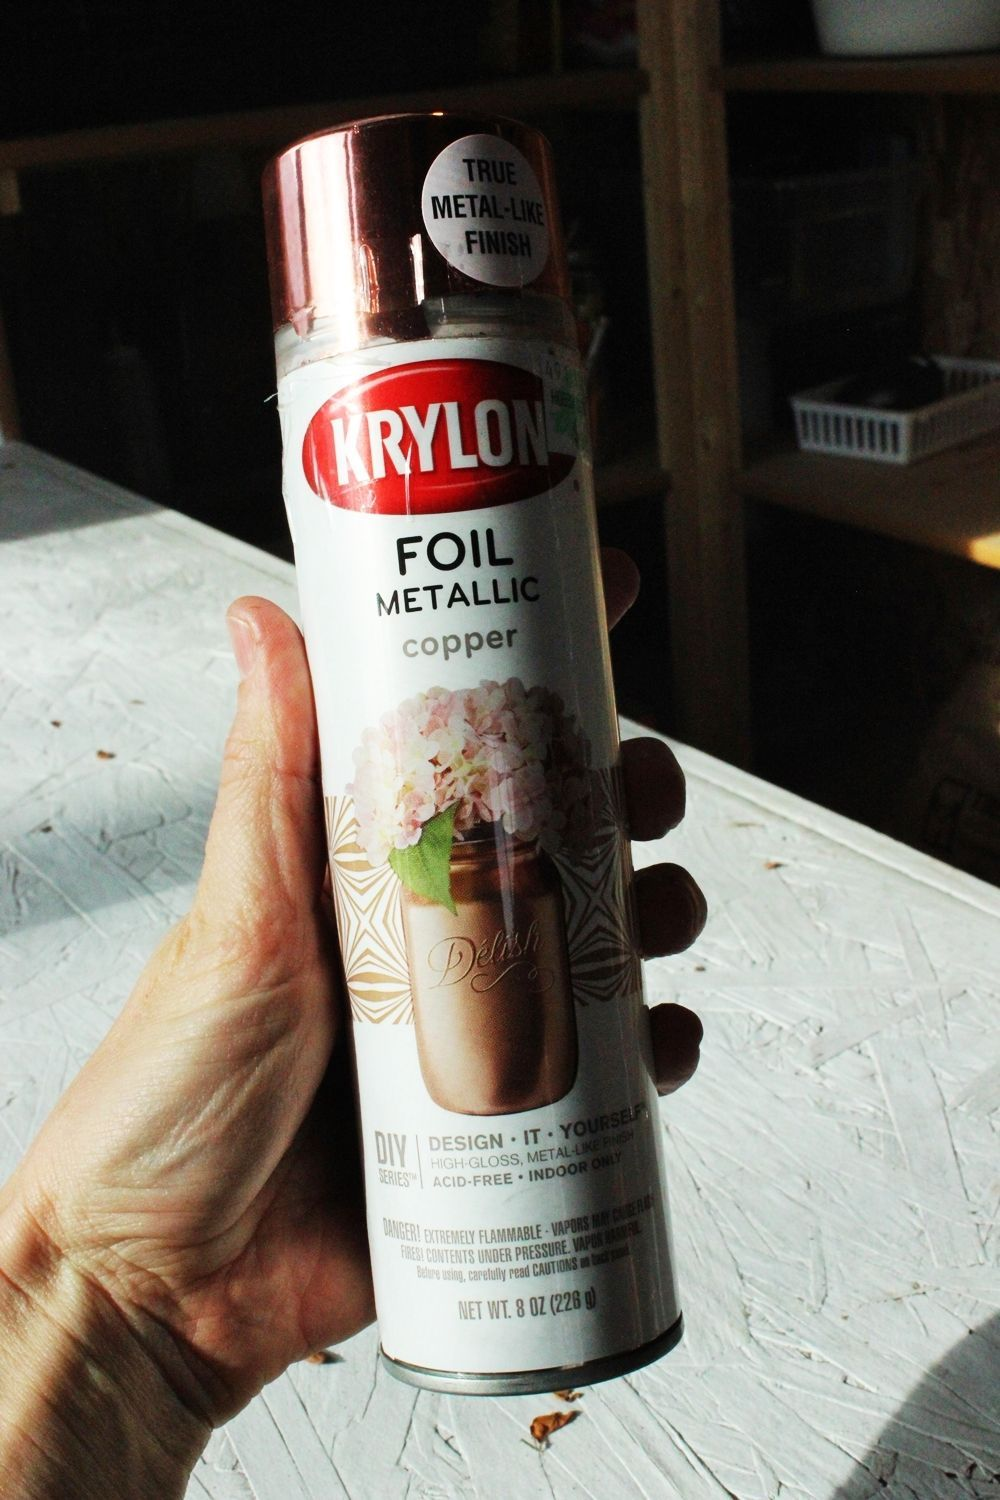 Krylon foil metallic spray paint in copper